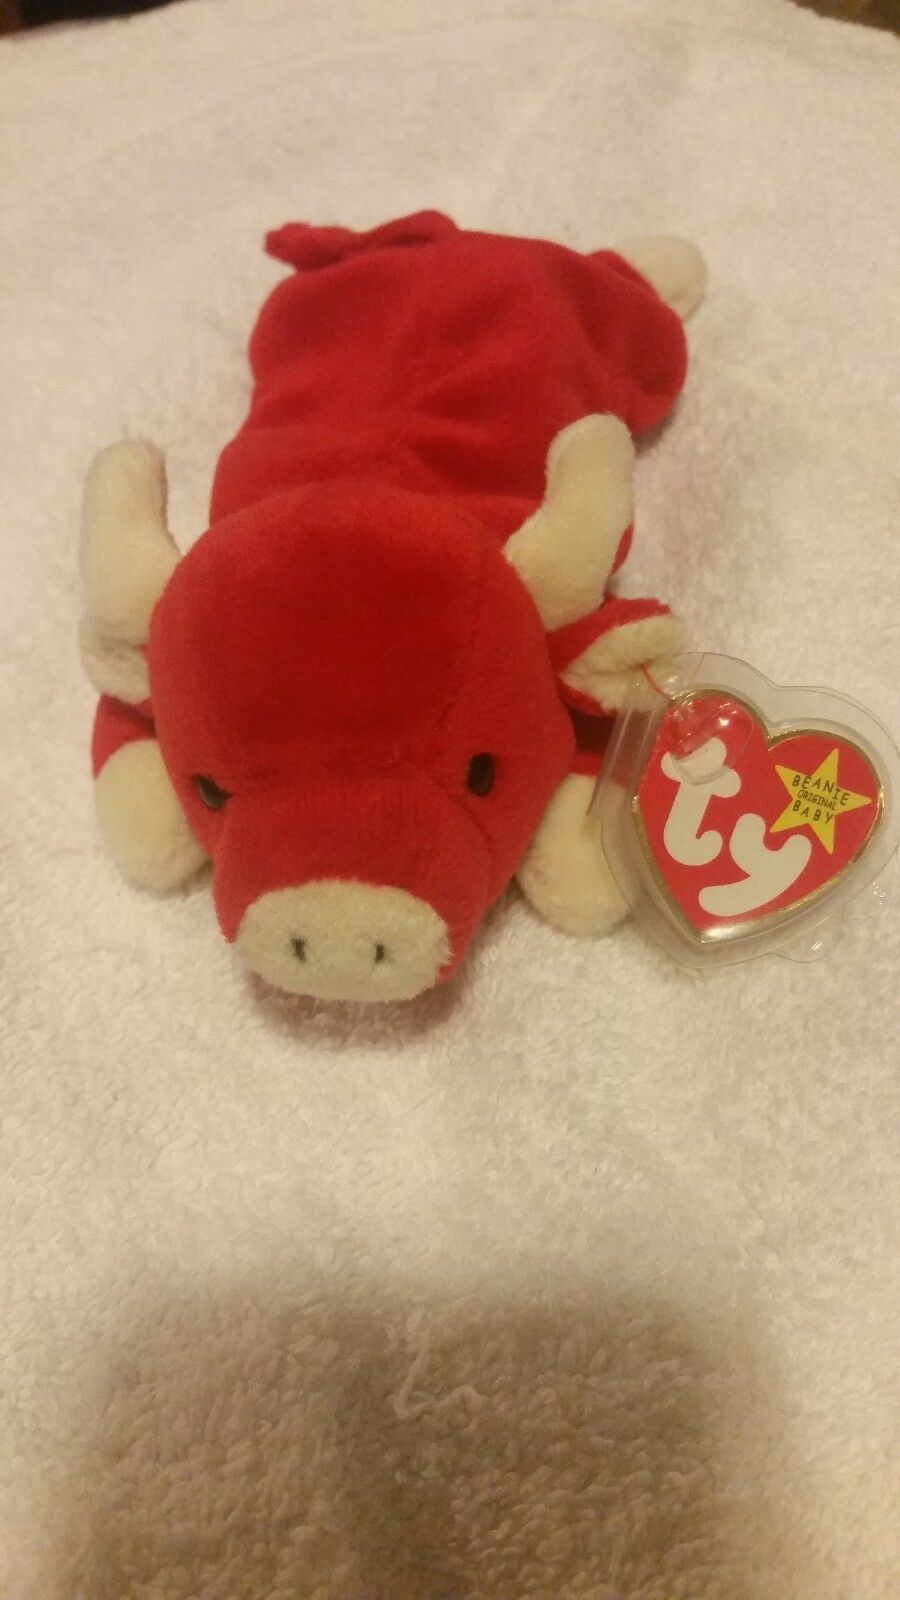 NEW SNORT (THE BULL) 1995 TY BEANIE BABY W P.E. PELLETS & FACTORY TAG ERRORS